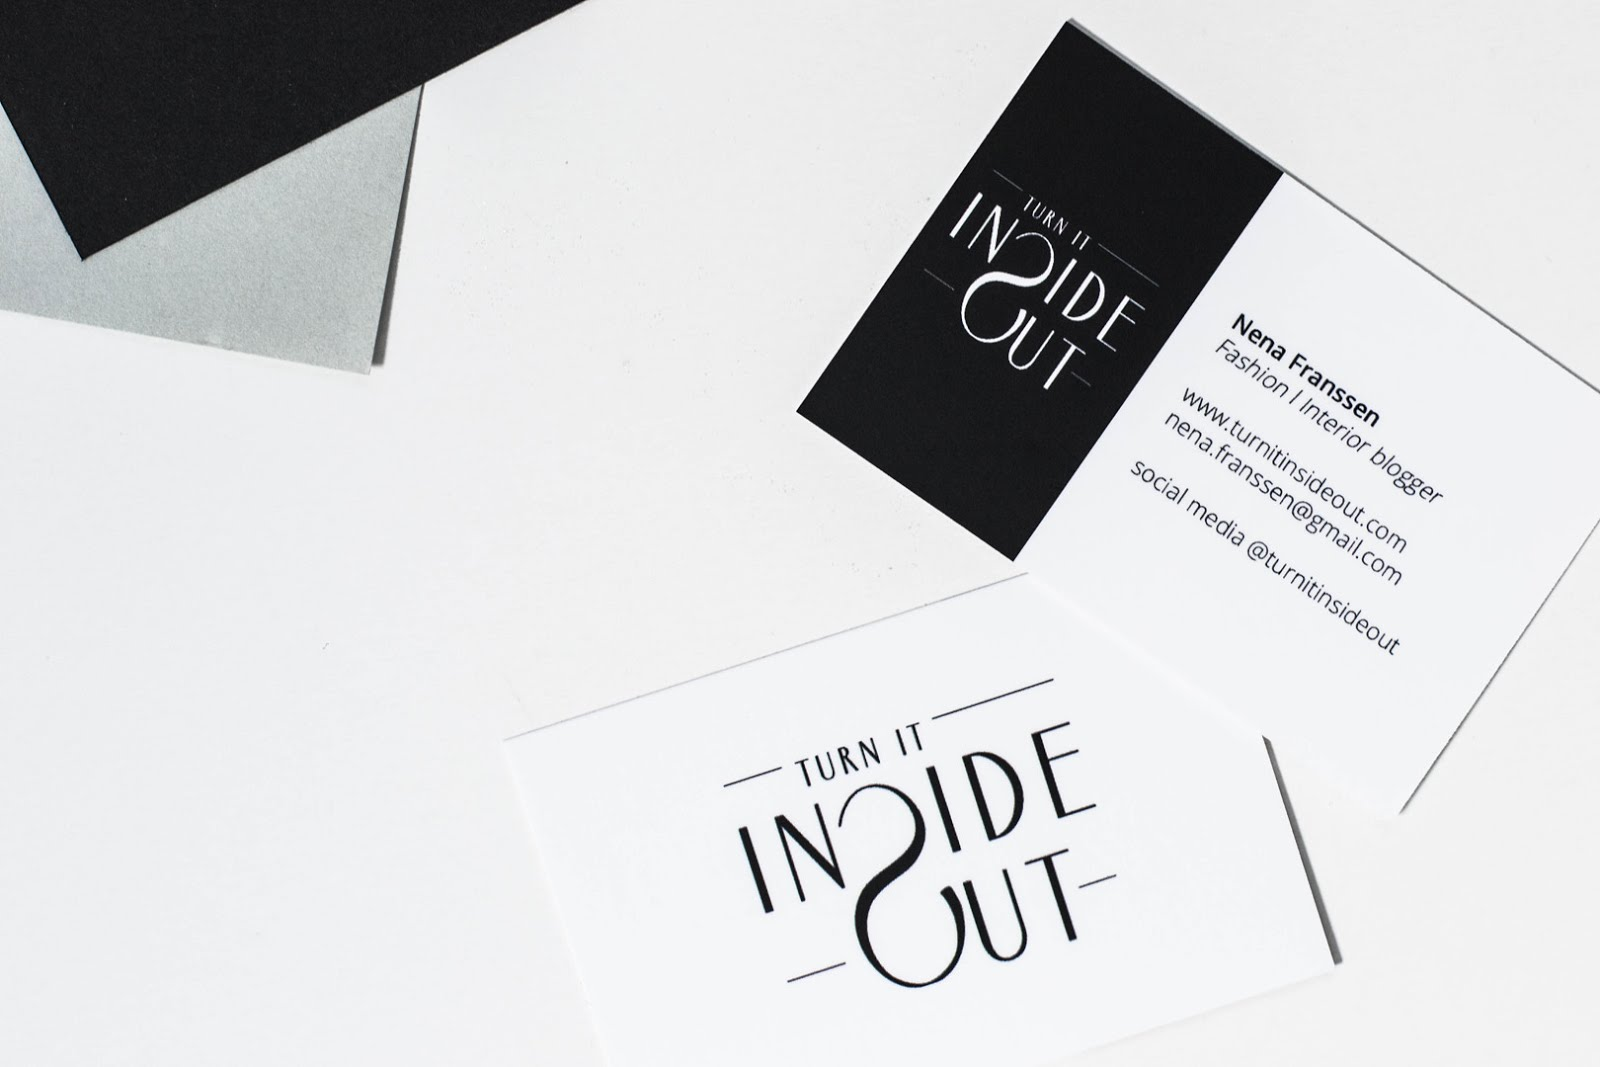 Moo, business cards, minimal, interior blogger, fashion blogger, black and white, logo design, flat lay